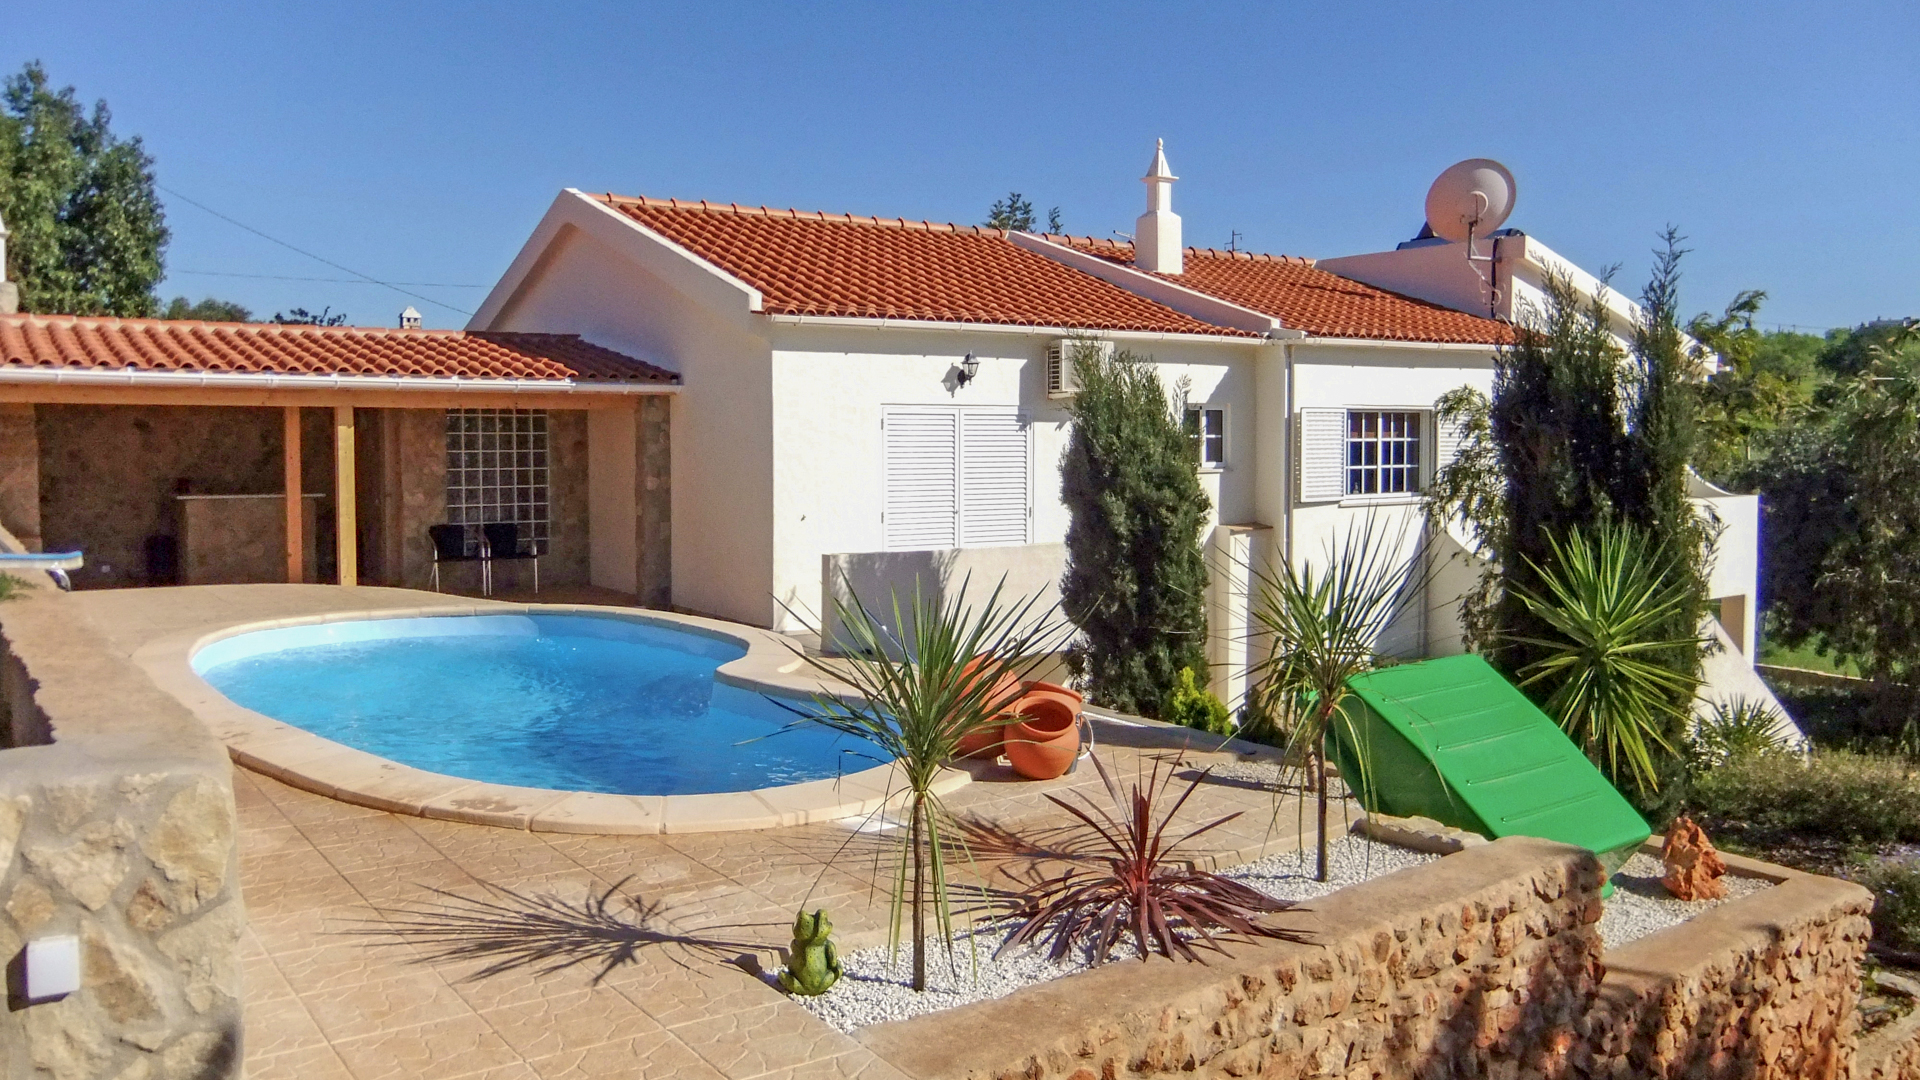 3 Bedroom Villa with Pool, Stables, Paddocks and Sea Views near Albufeira | S5054 3 bedroom villa in a quiet location with wonderful sea views, near Albufeira. The property has a pool, basement, stables, paddocks and easy to maintain gardens. It is also close to beaches and amenities.